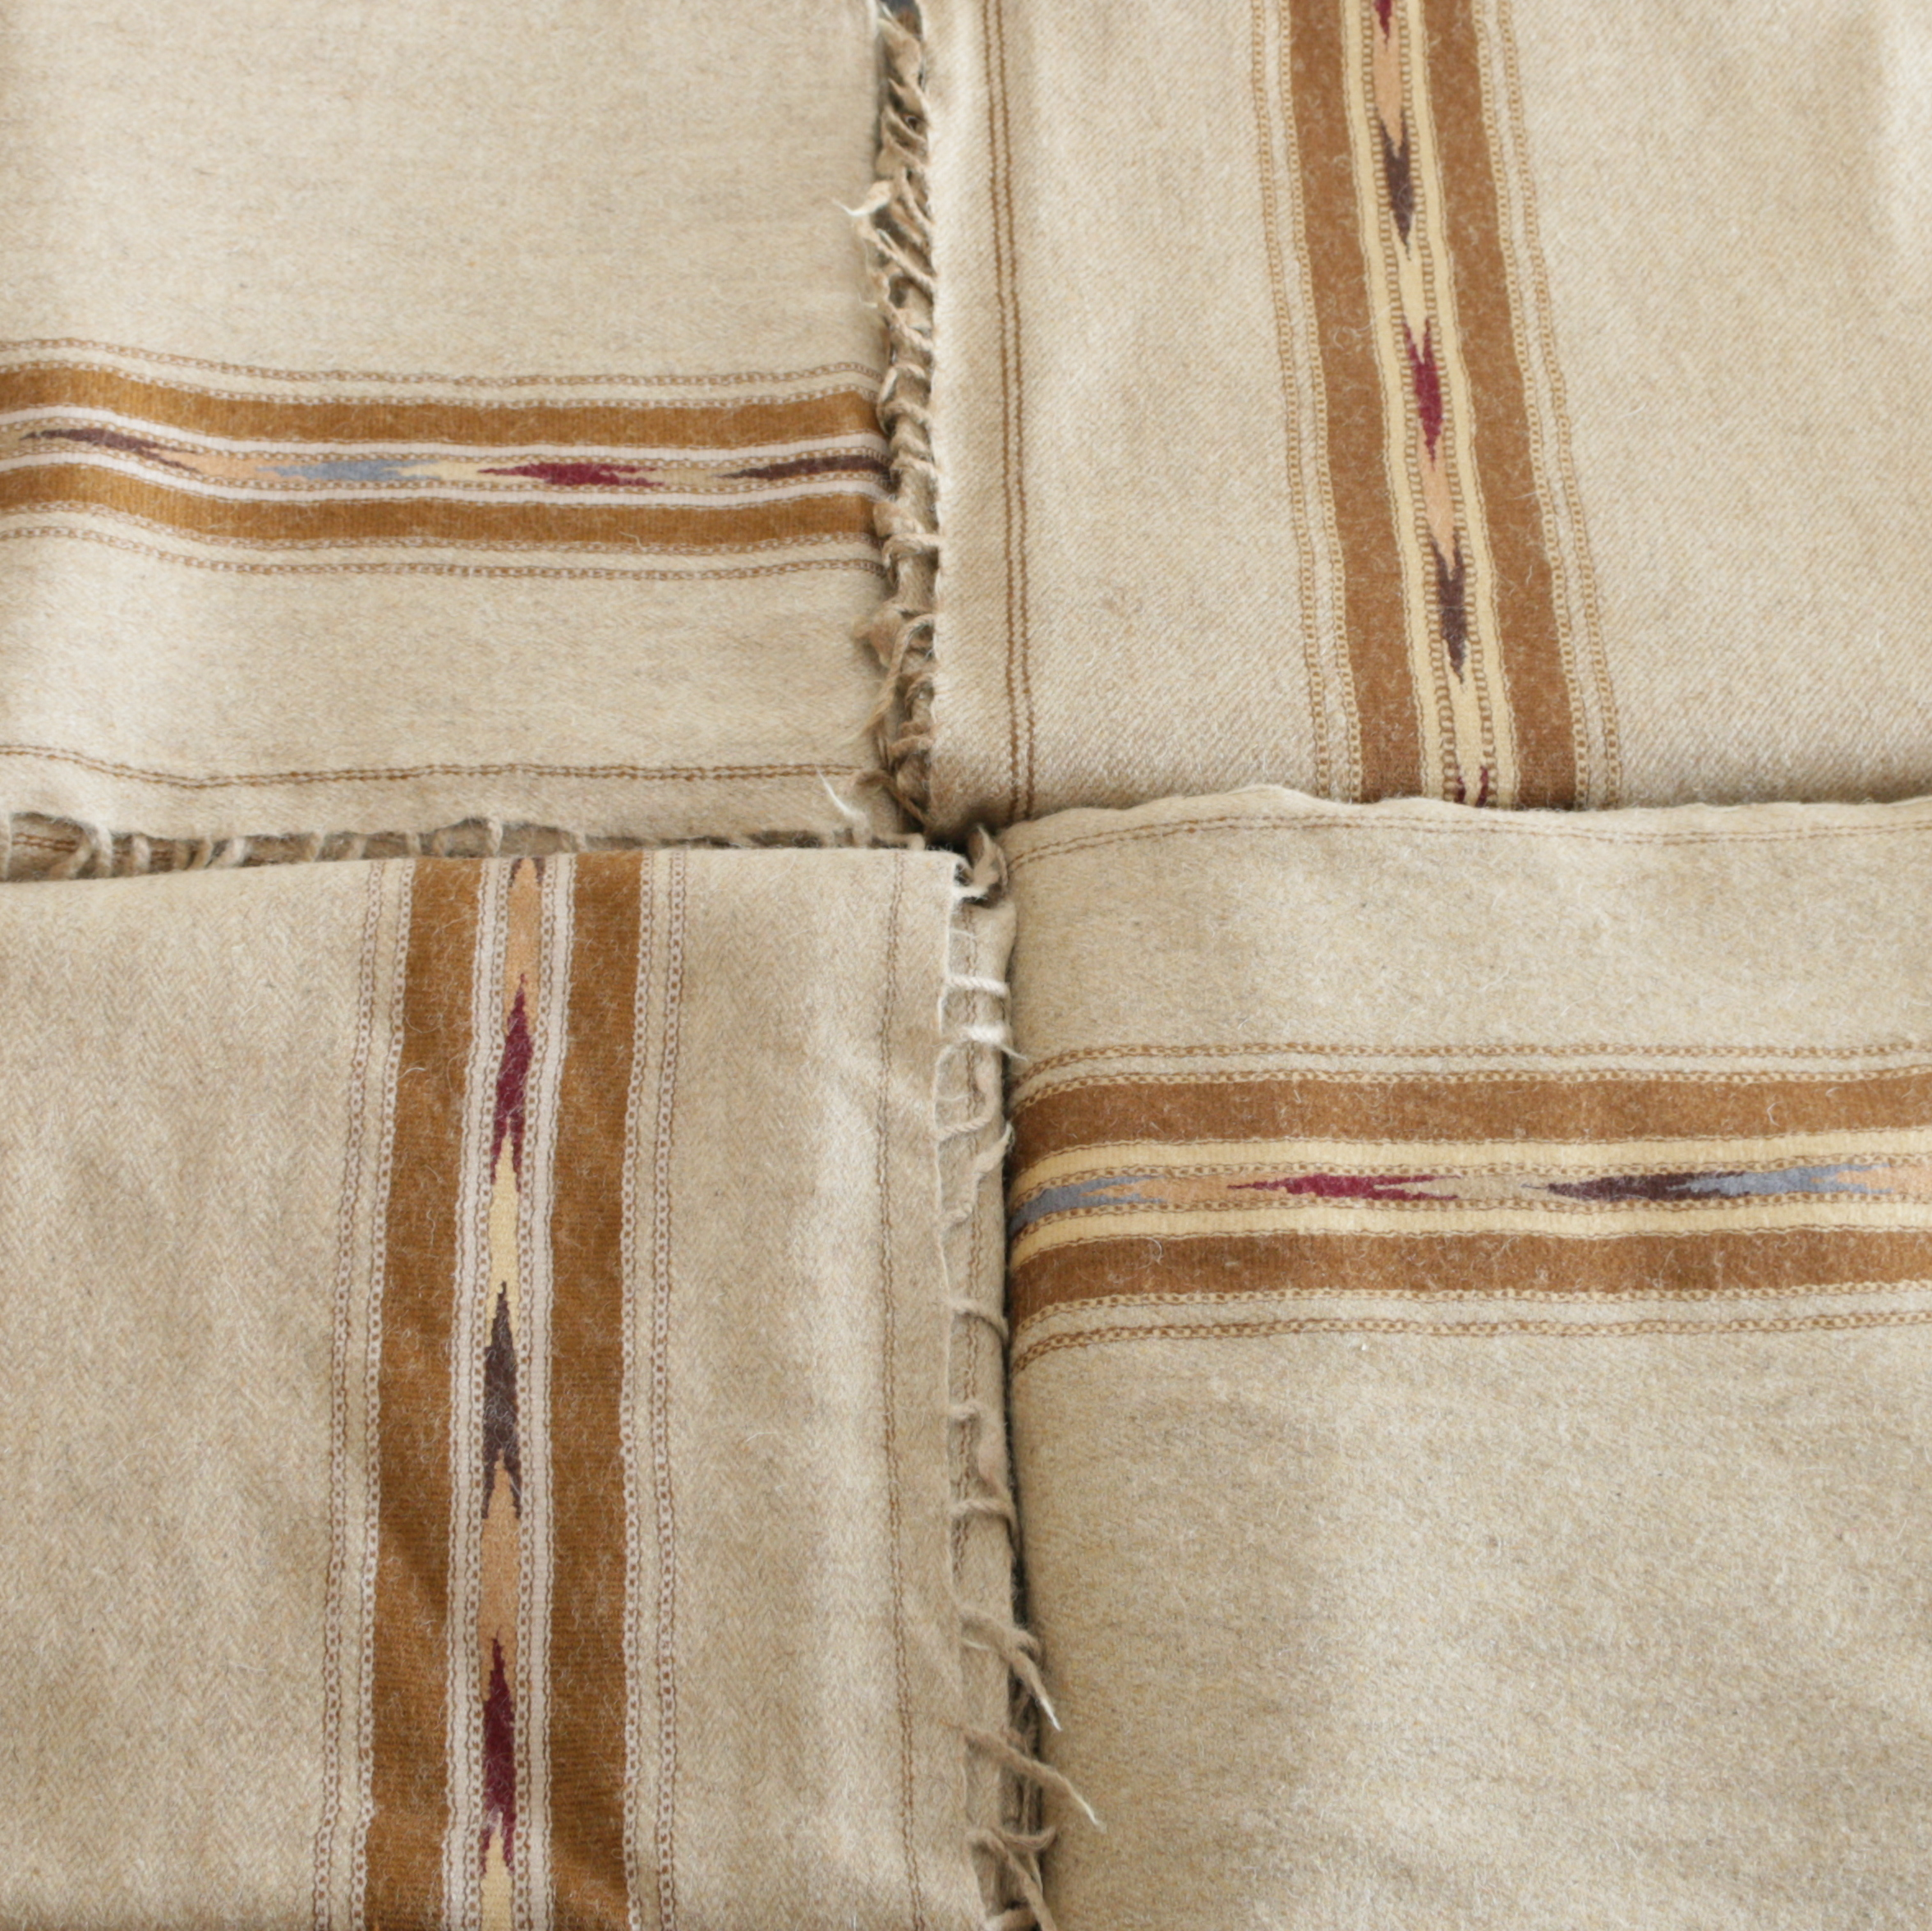 handwoven plaid from Swat